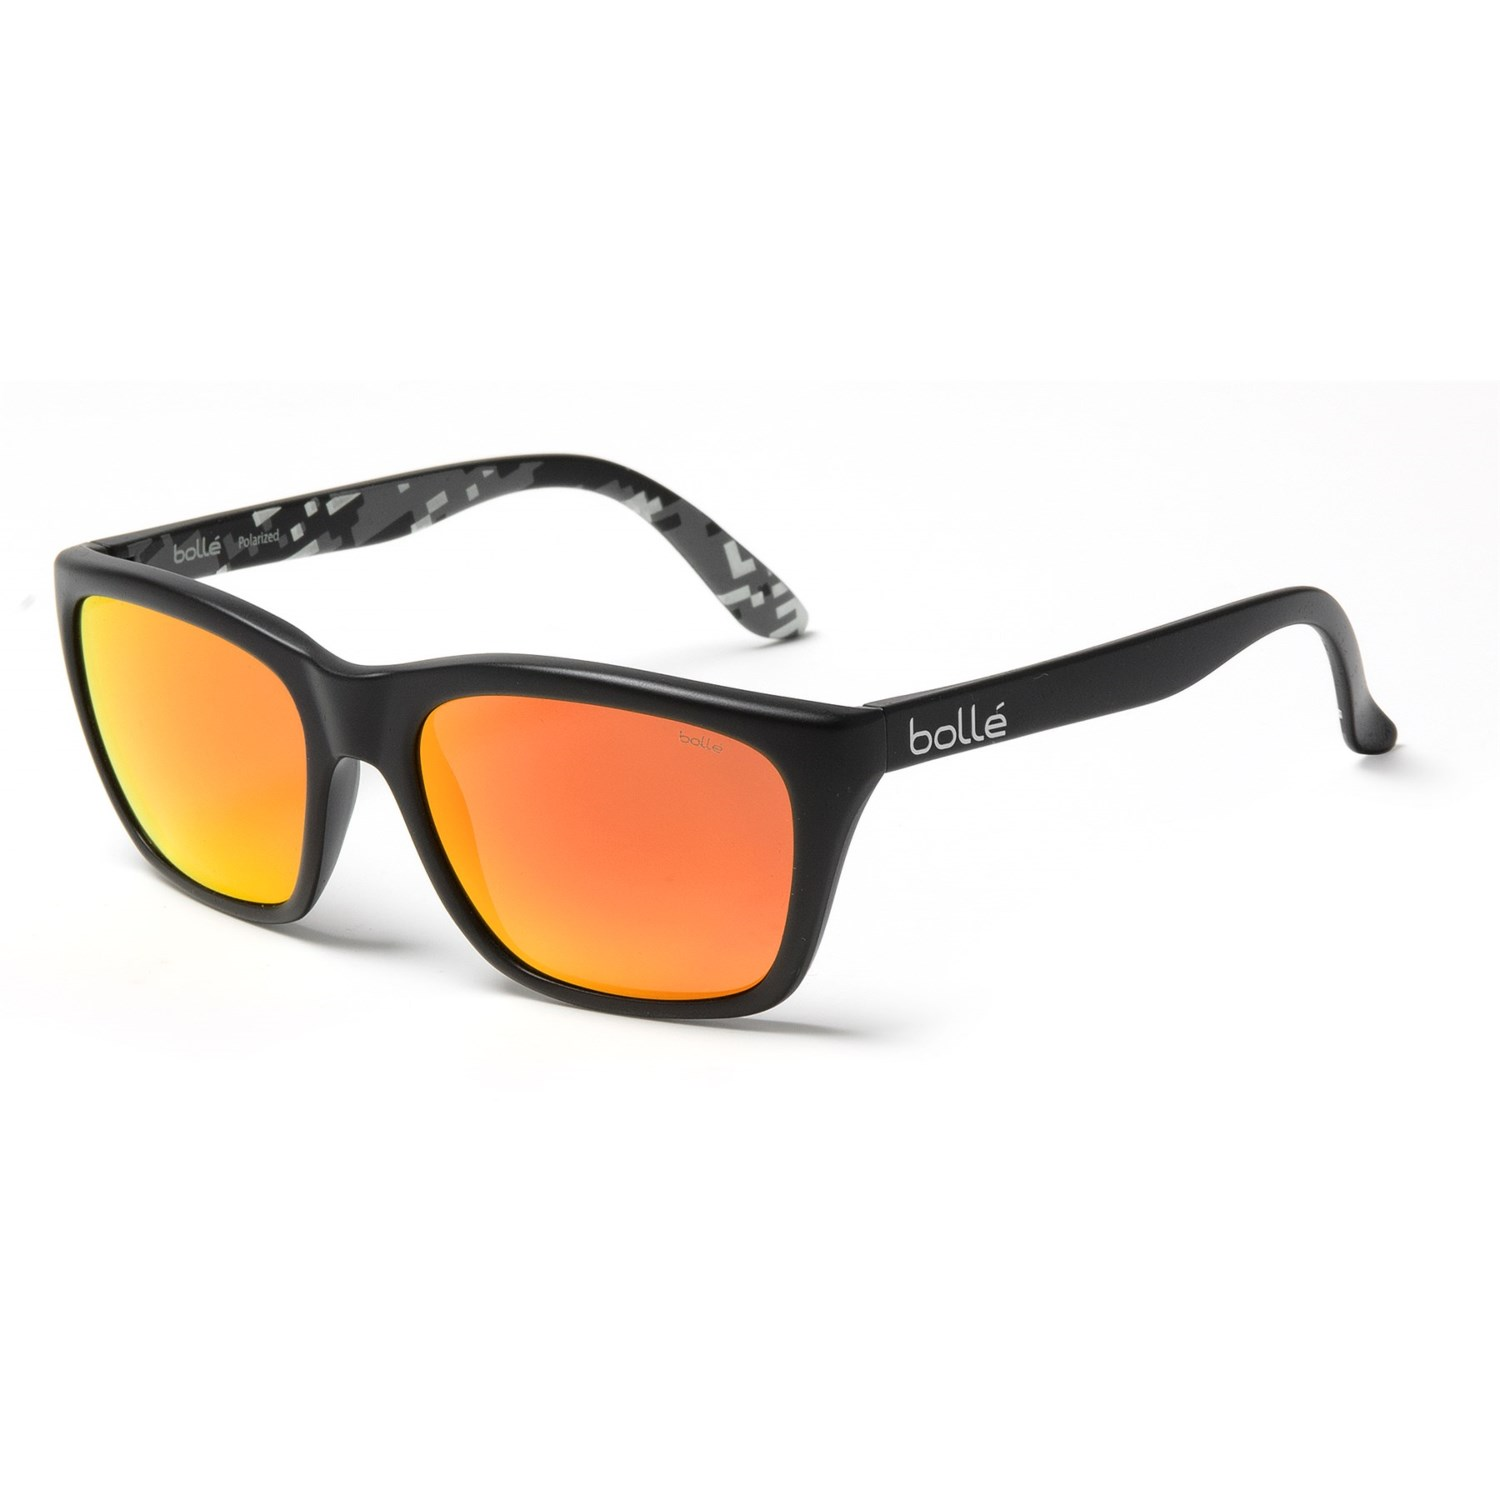 Bolle 527 Sunglasses - Polarized